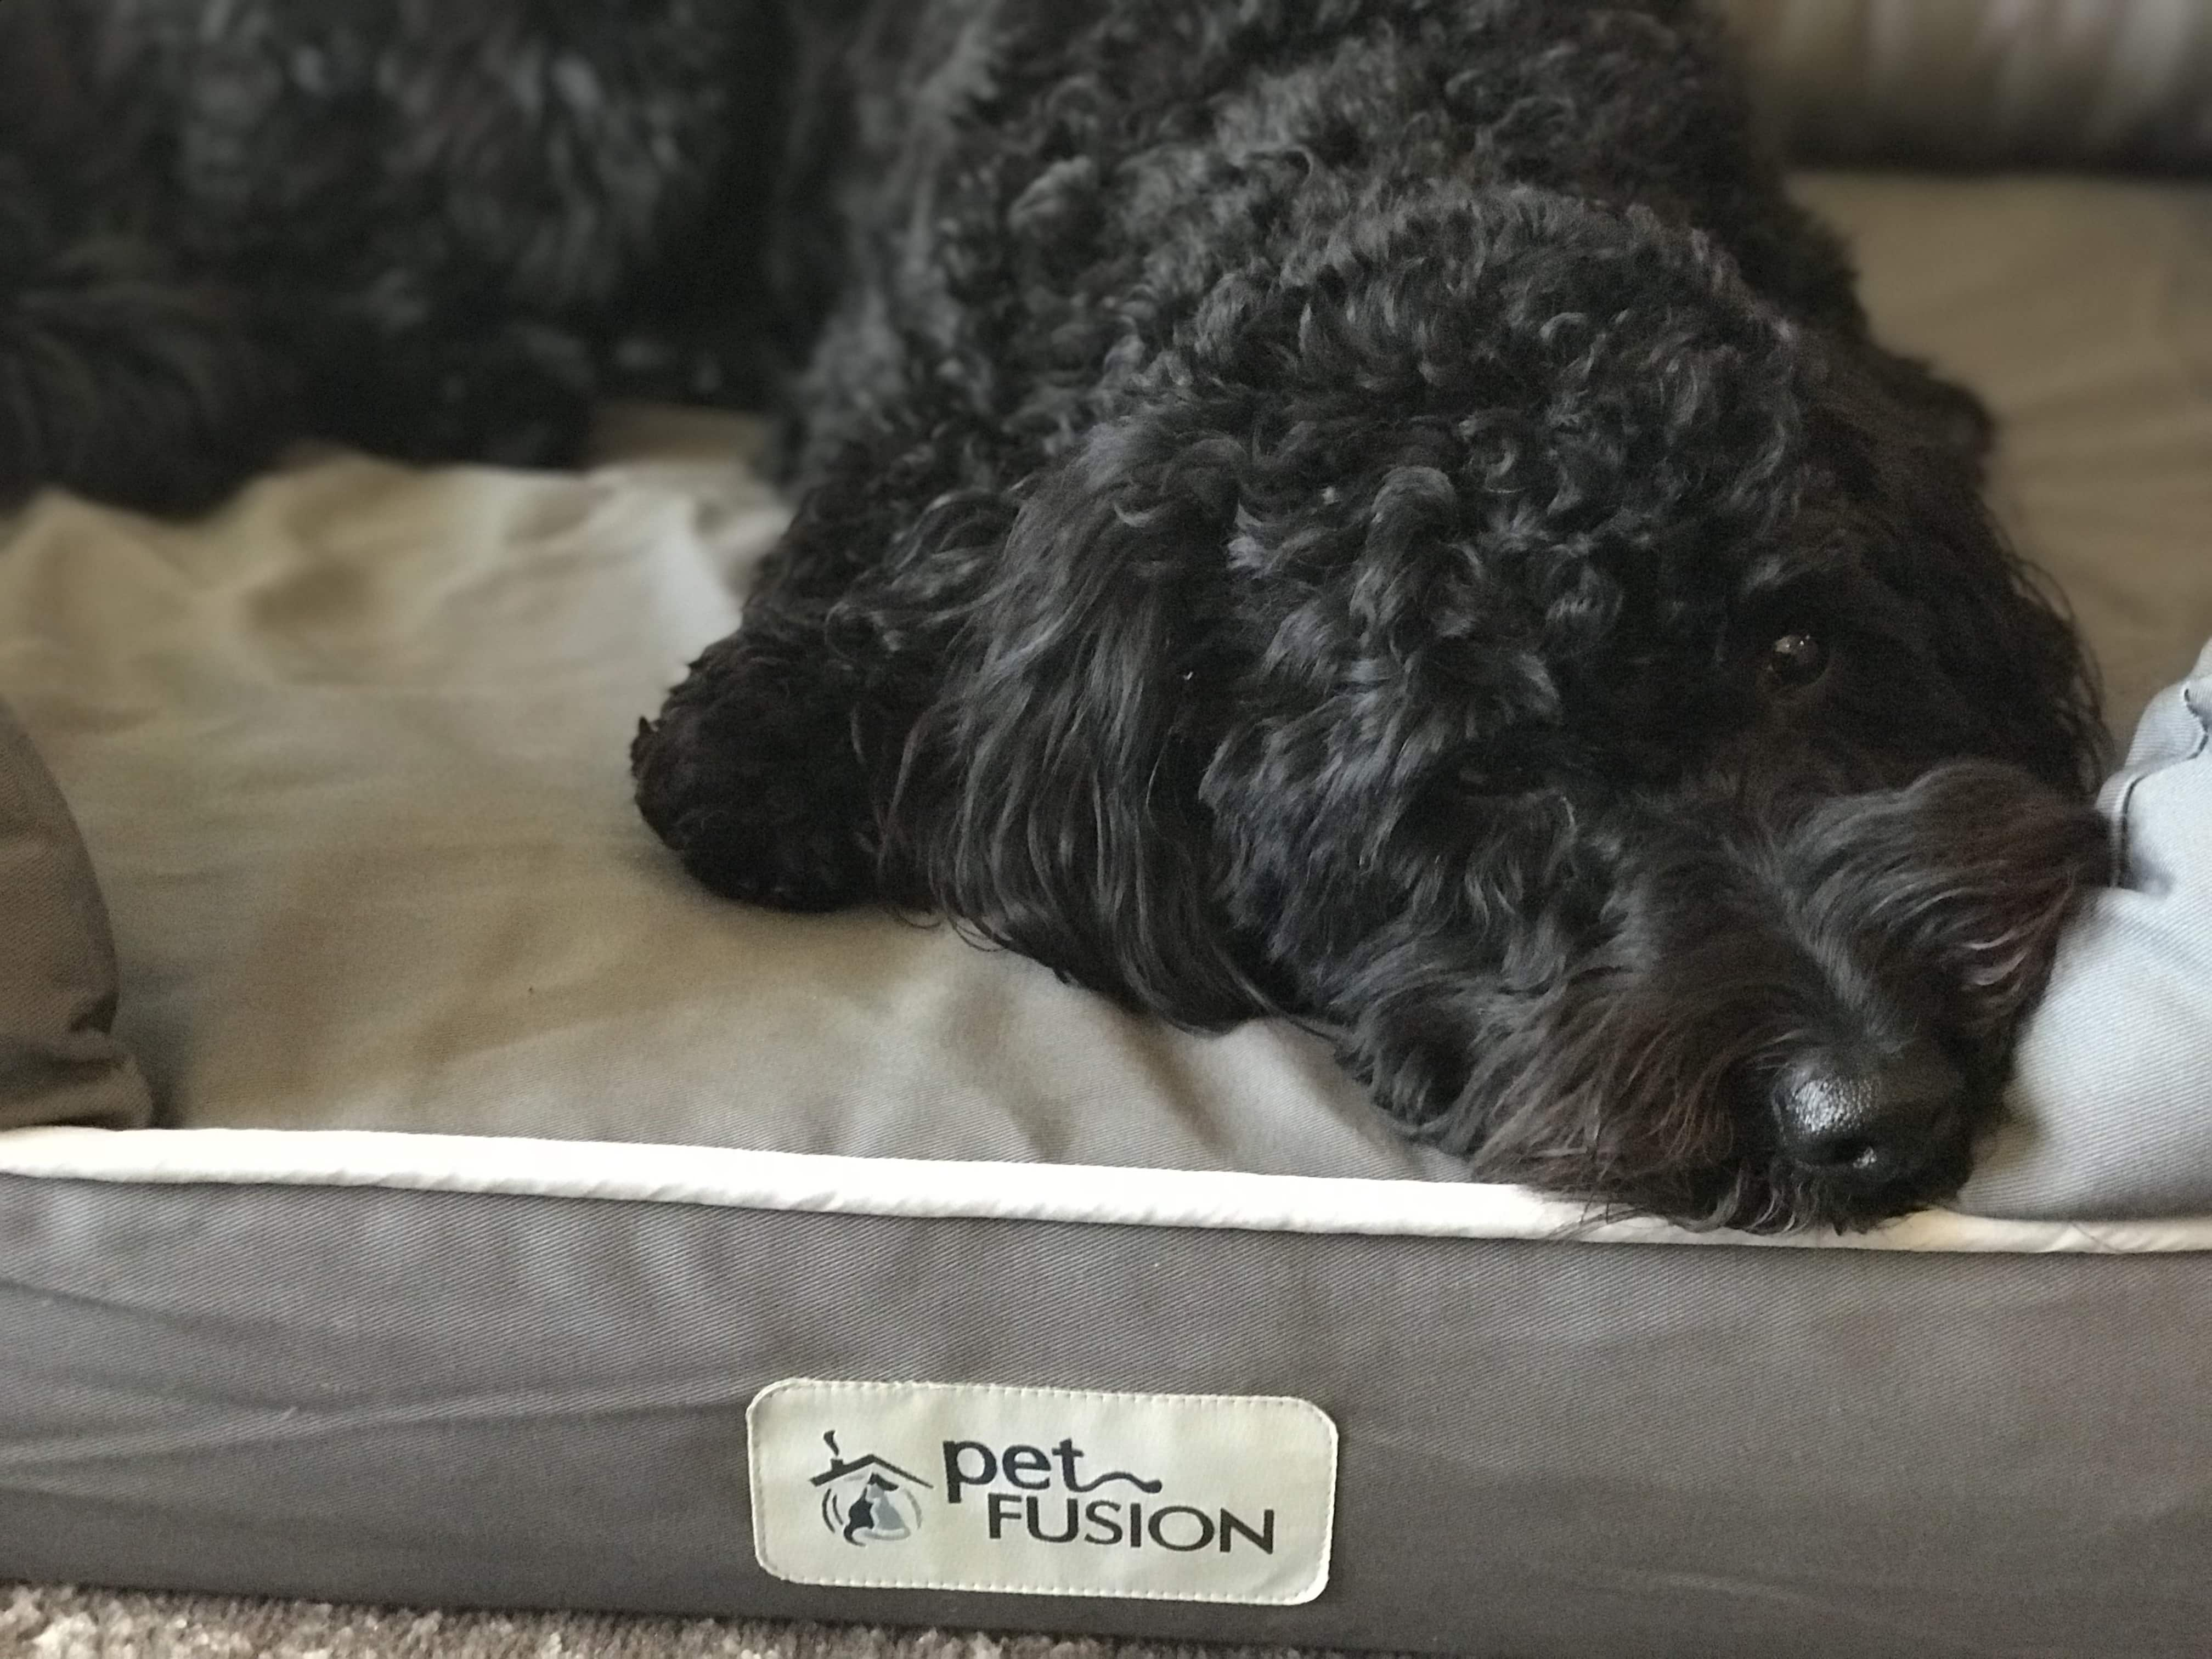 Petfusion Ultimate Dog Bed Review: Best Dog Bed Ever?